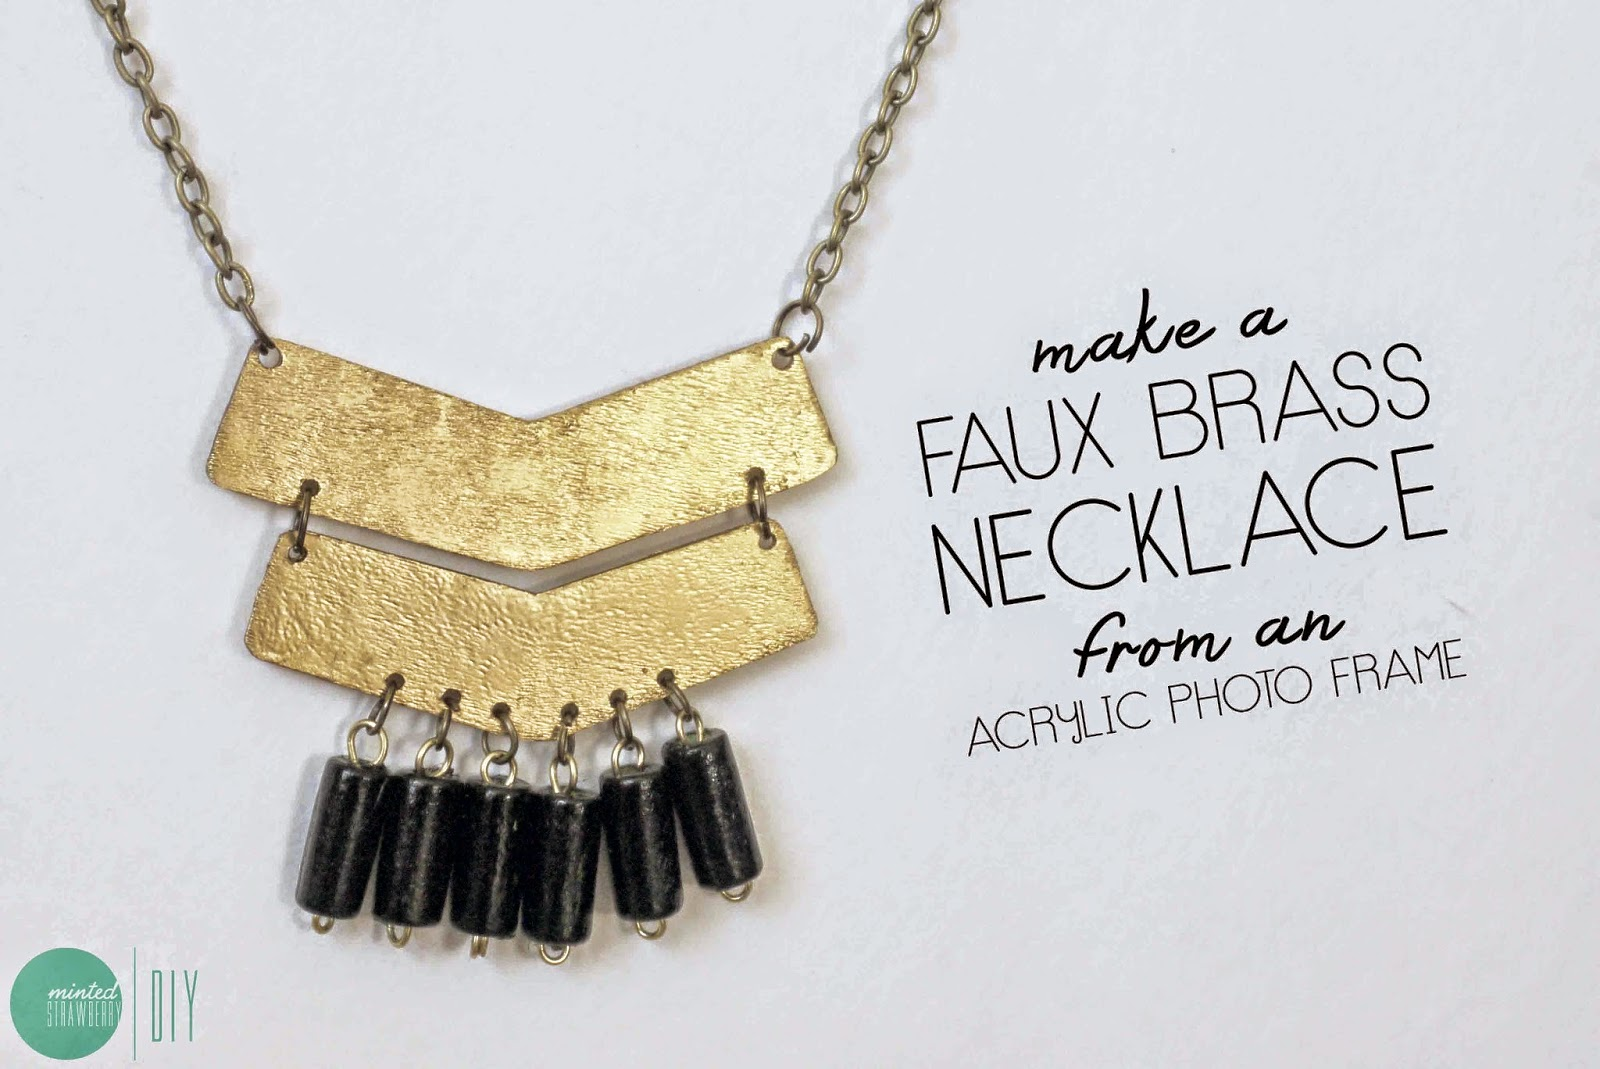 DIY: Another Aztec-Inspired Accessory - A Necklace - Minted Strawberry